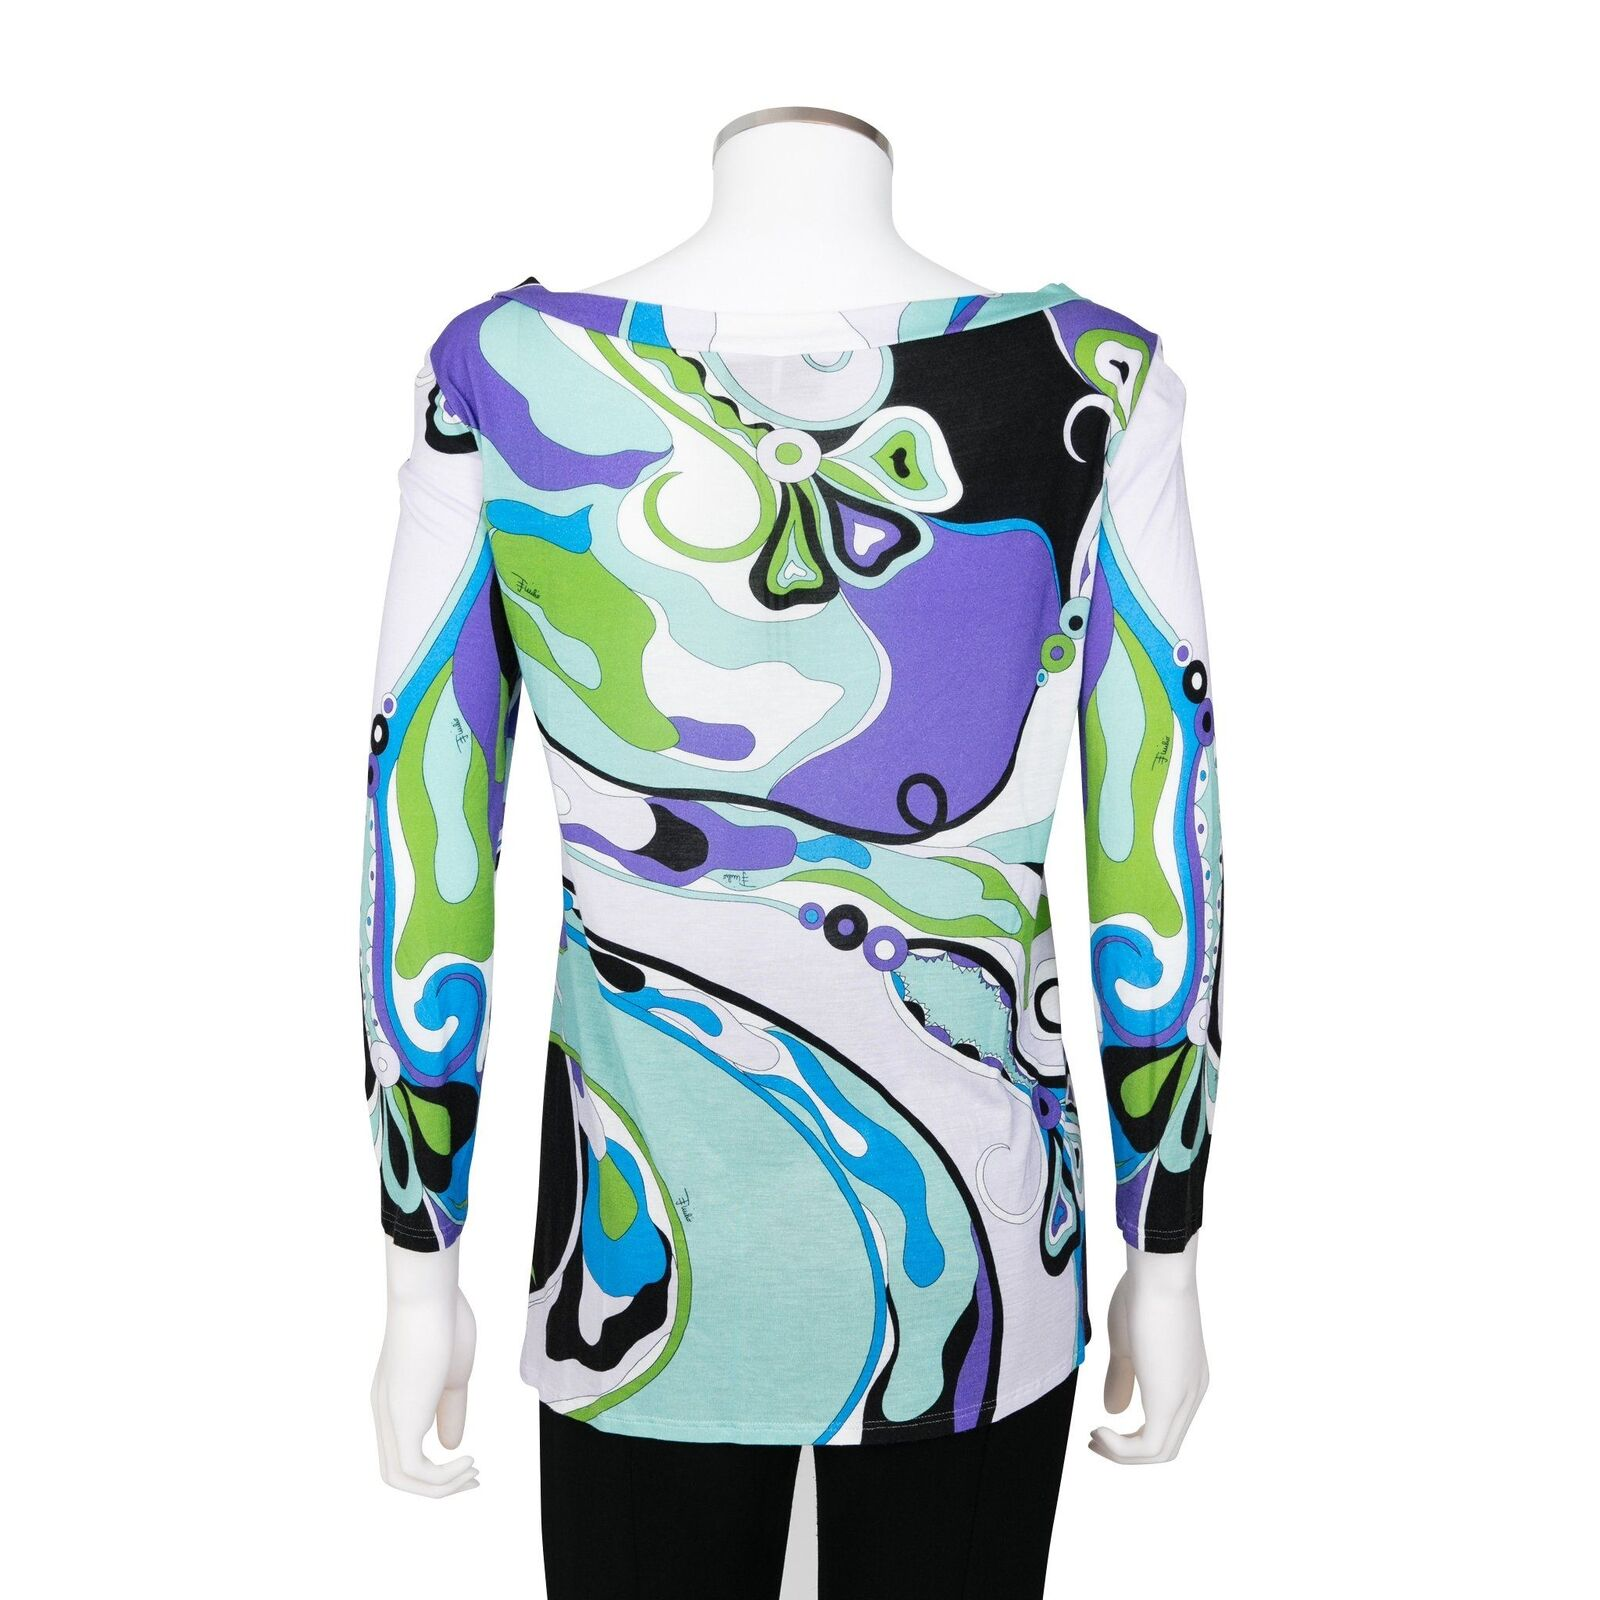 Emilio Pucci Top Multi-Colourot Long Sleeve Top Pucci - Größe 36 2543a5